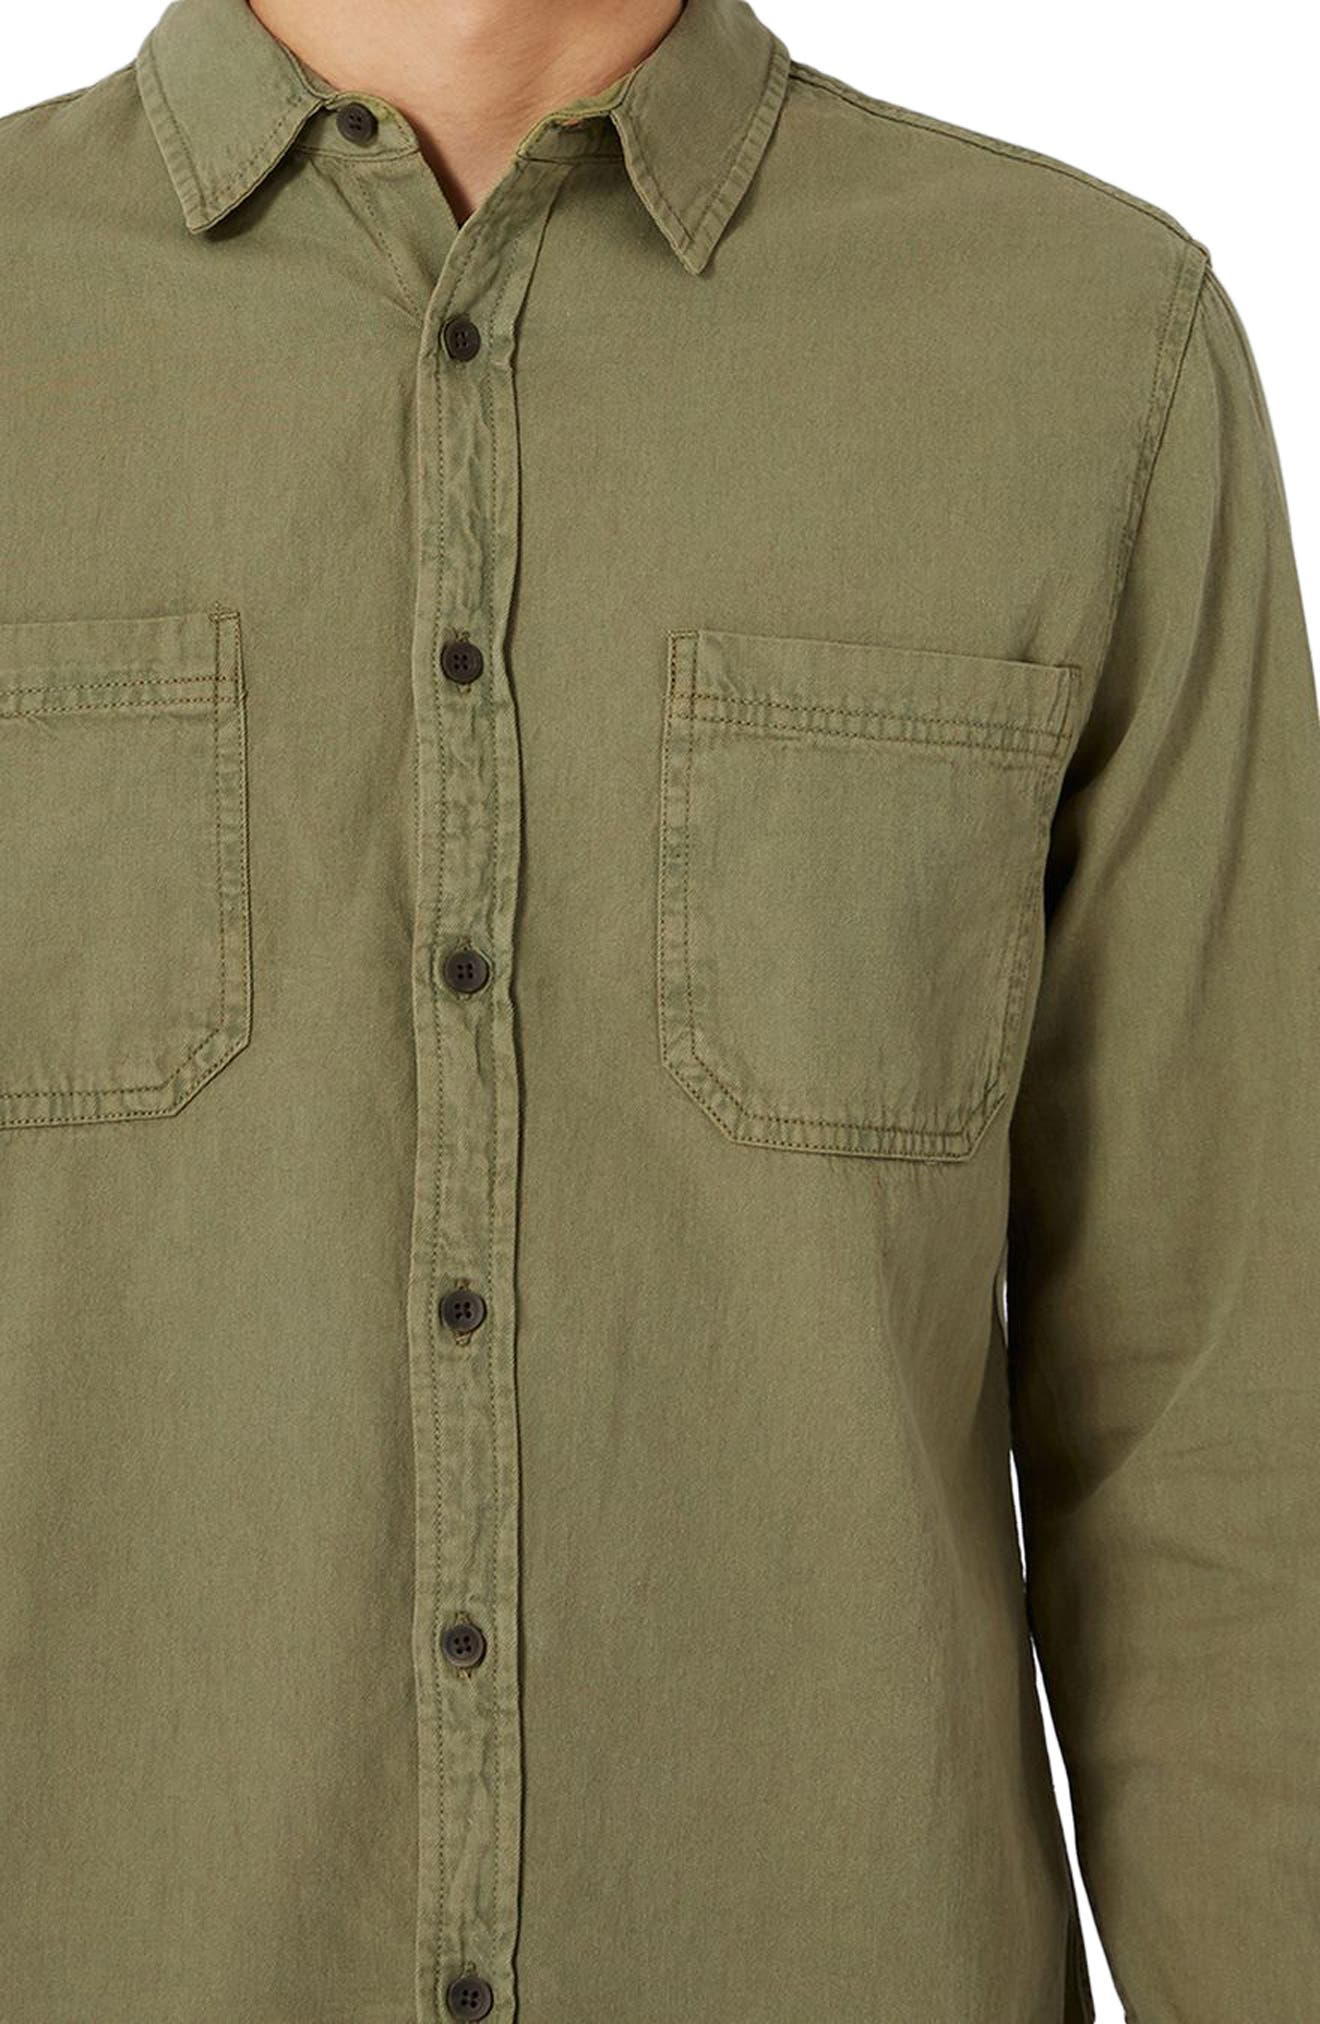 Trim Fit Washed Twill Shirt,                             Alternate thumbnail 3, color,                             Olive